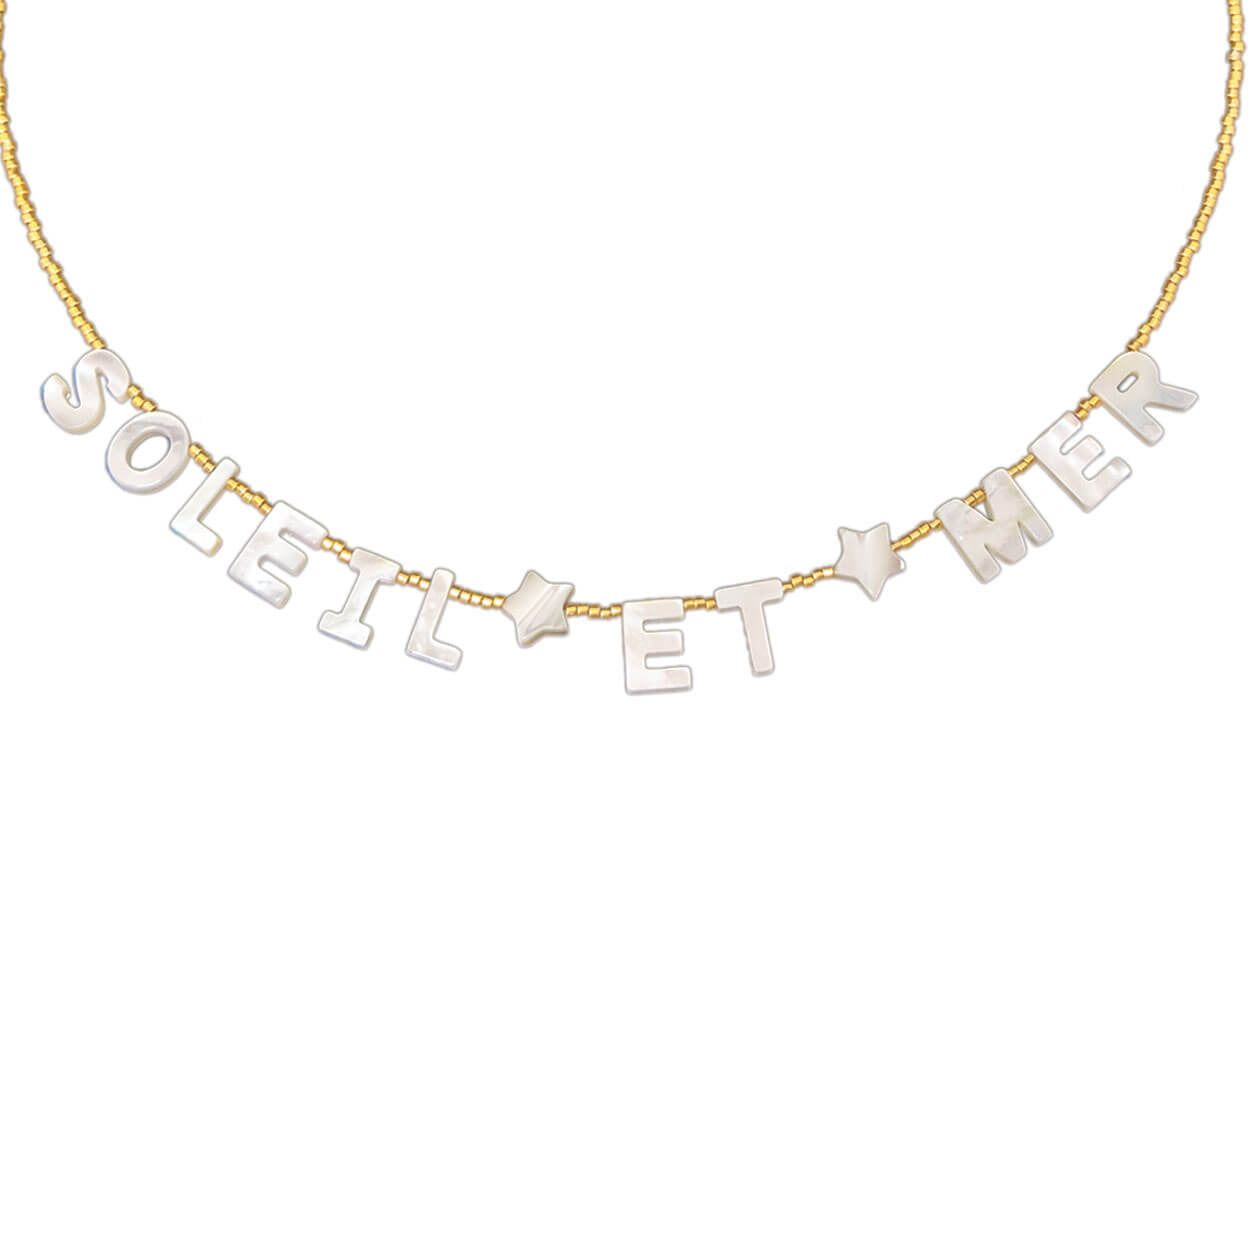 "tropical style necklace that reads ""soleil et mer"" in mother of pearl letters on seed bead strand"